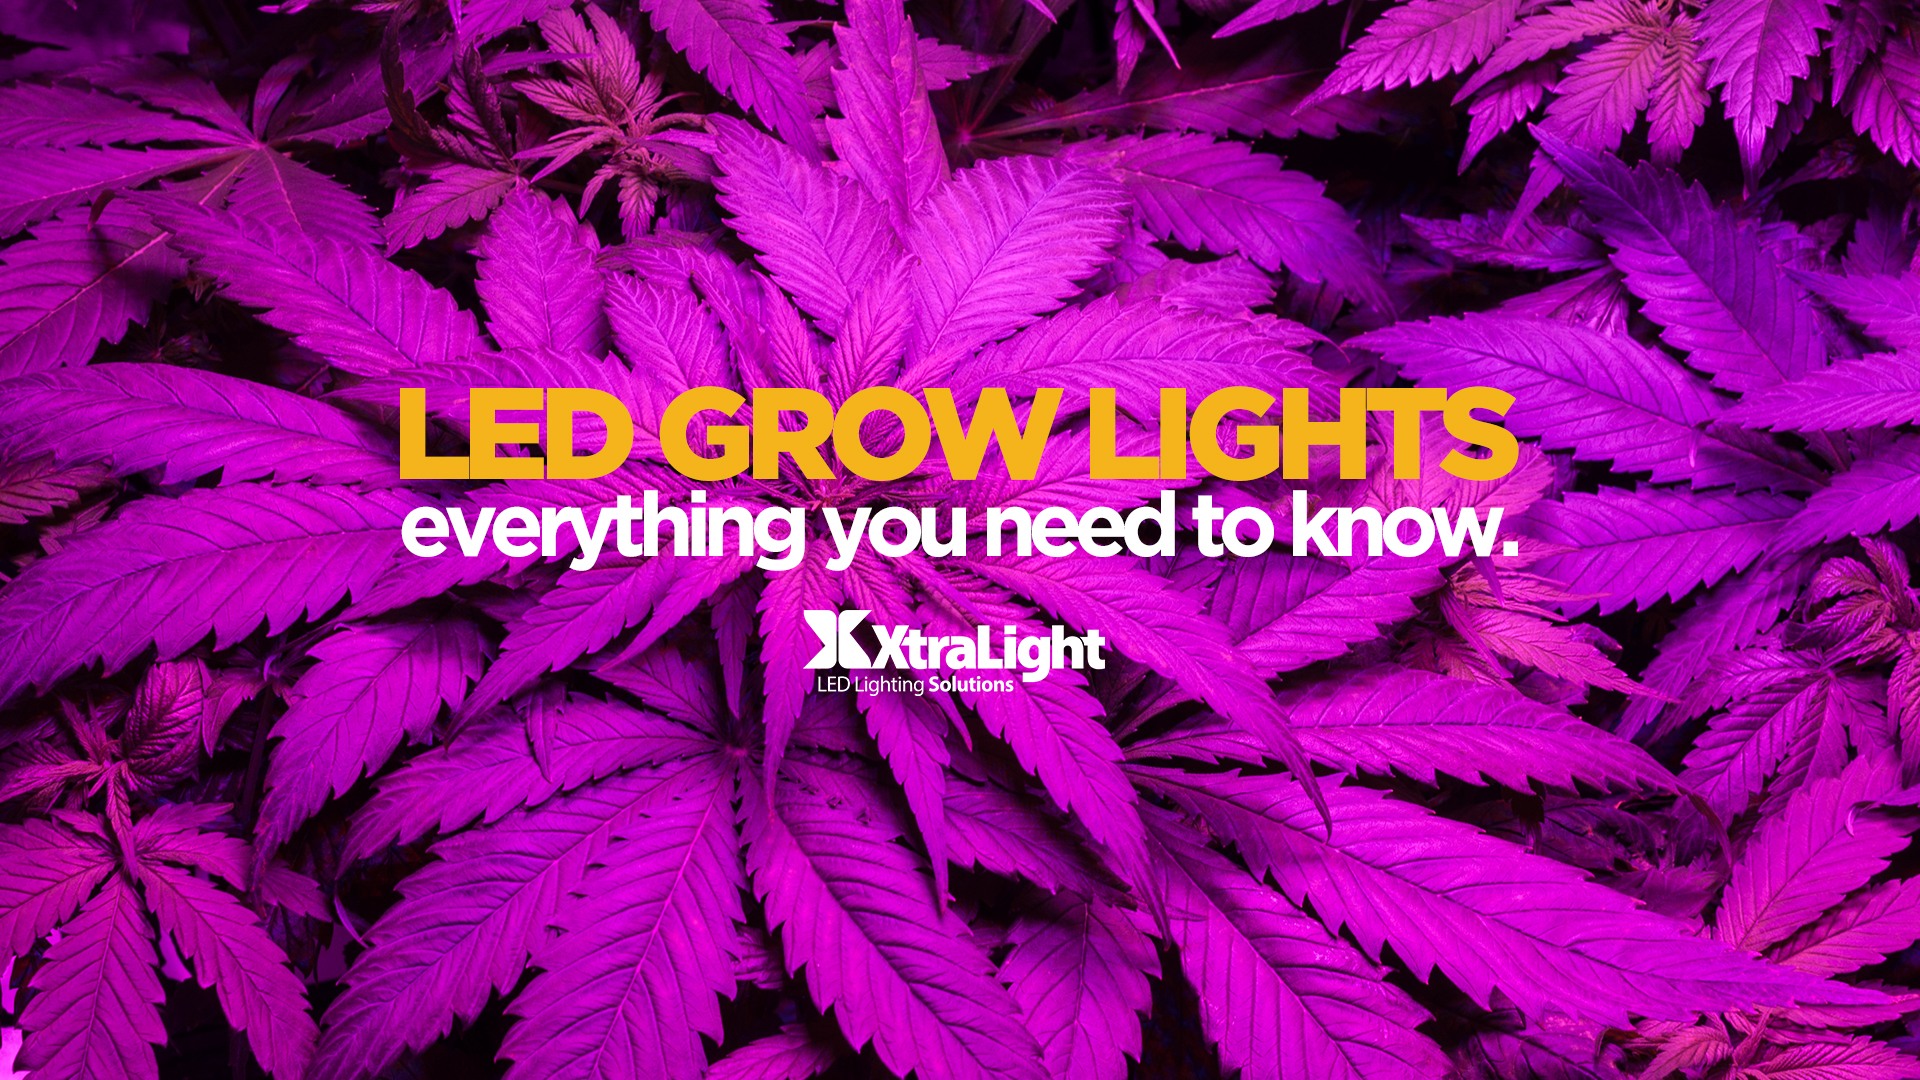 How To Pick The Right LED Grow Light: